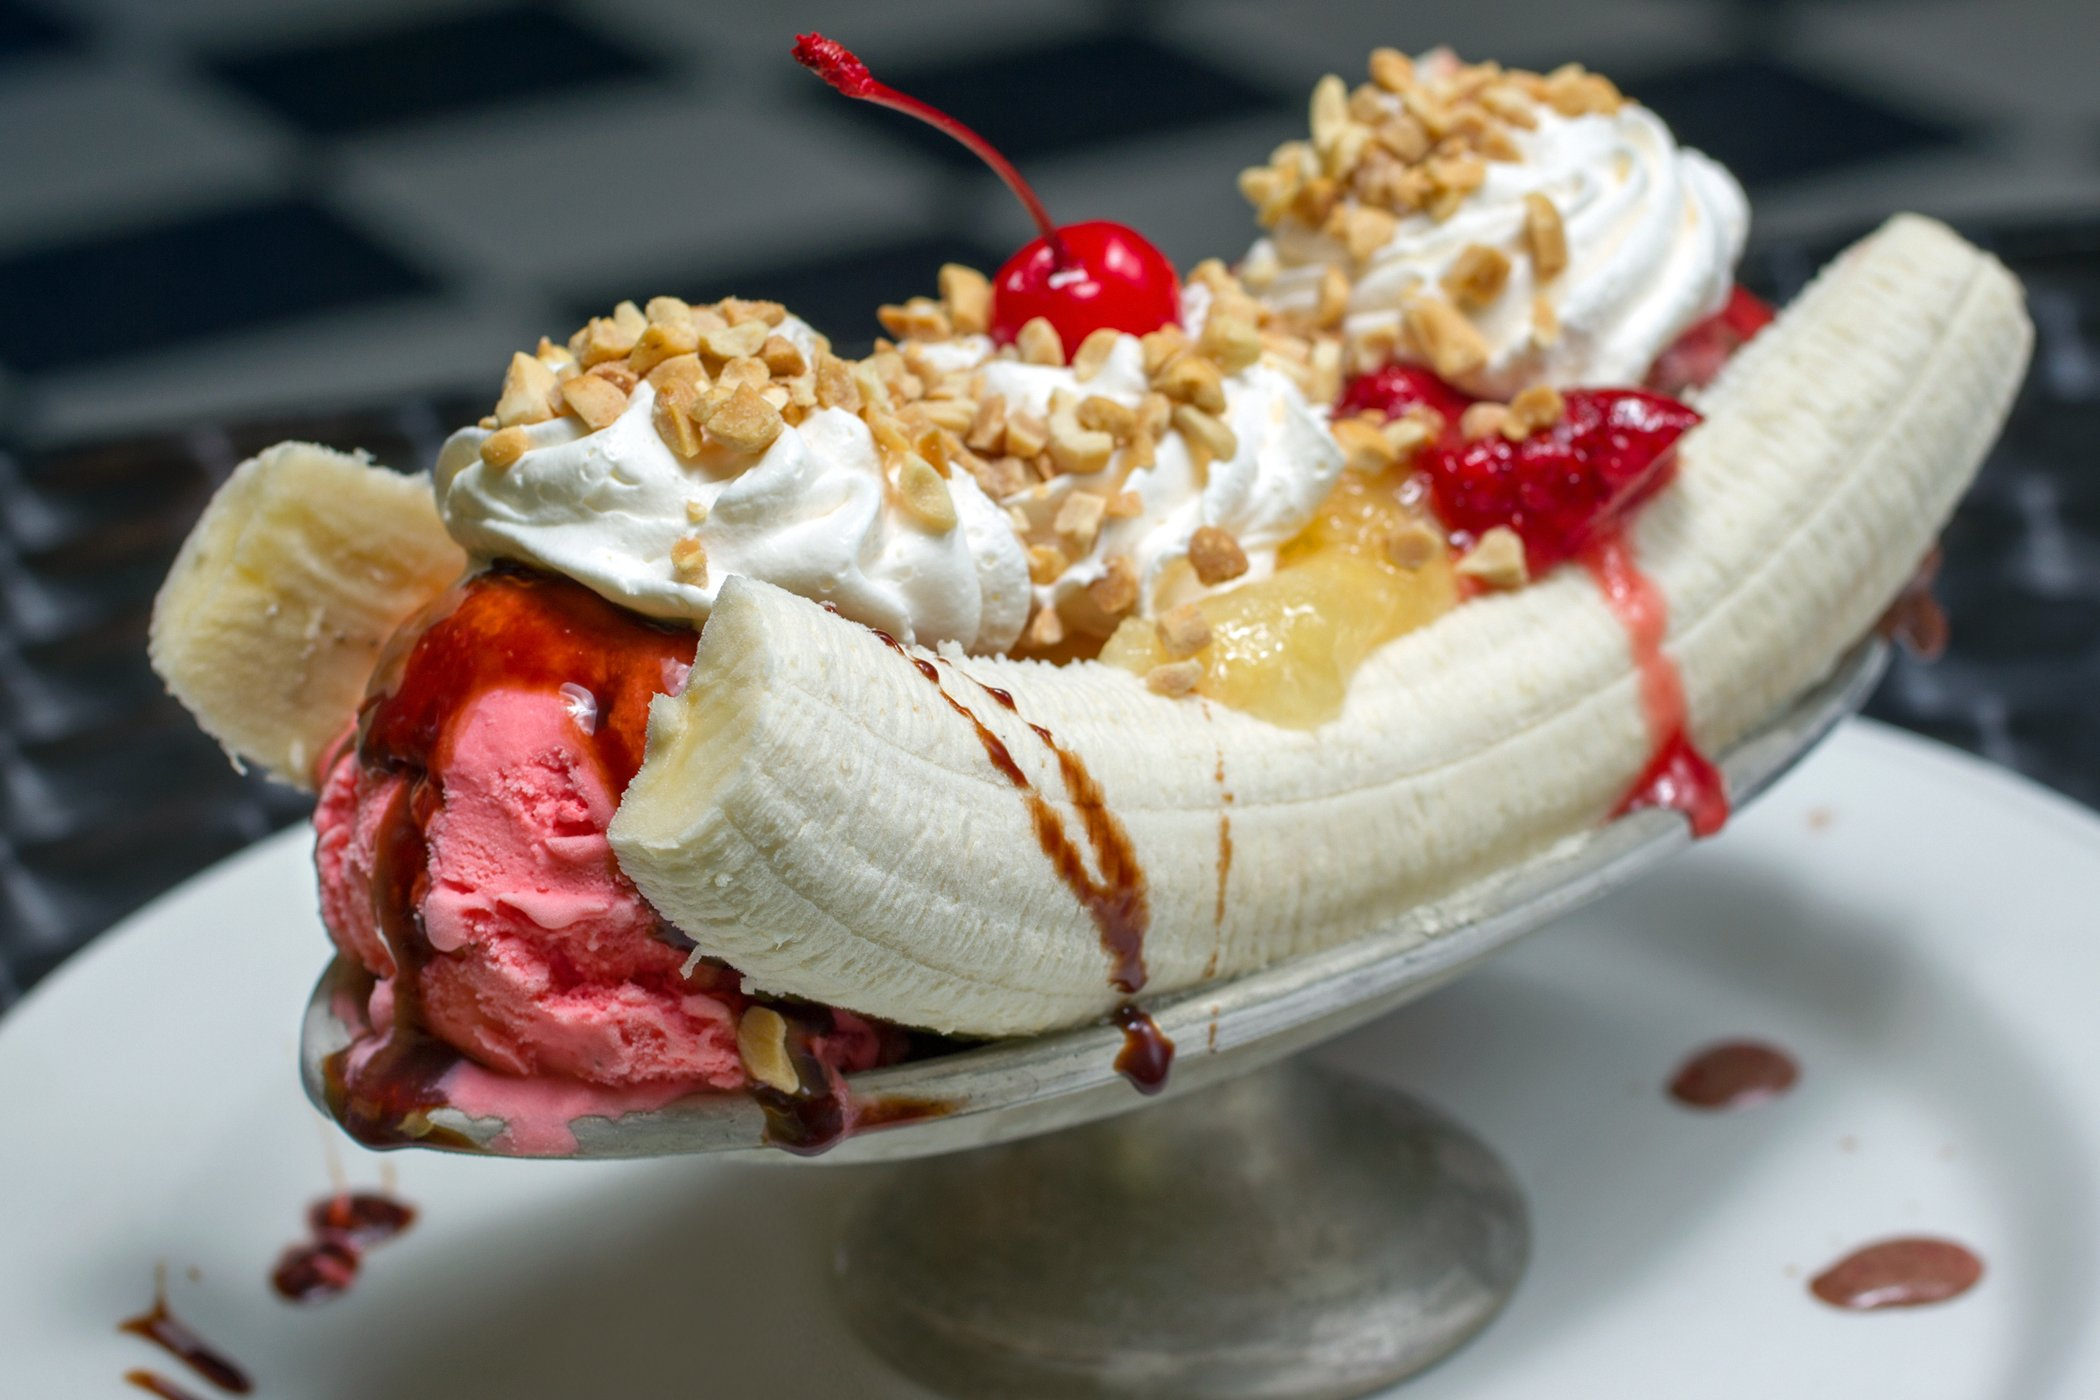 banana split ice cream dessert sweets sugar 1bananasplit wallpaper 2100x1400